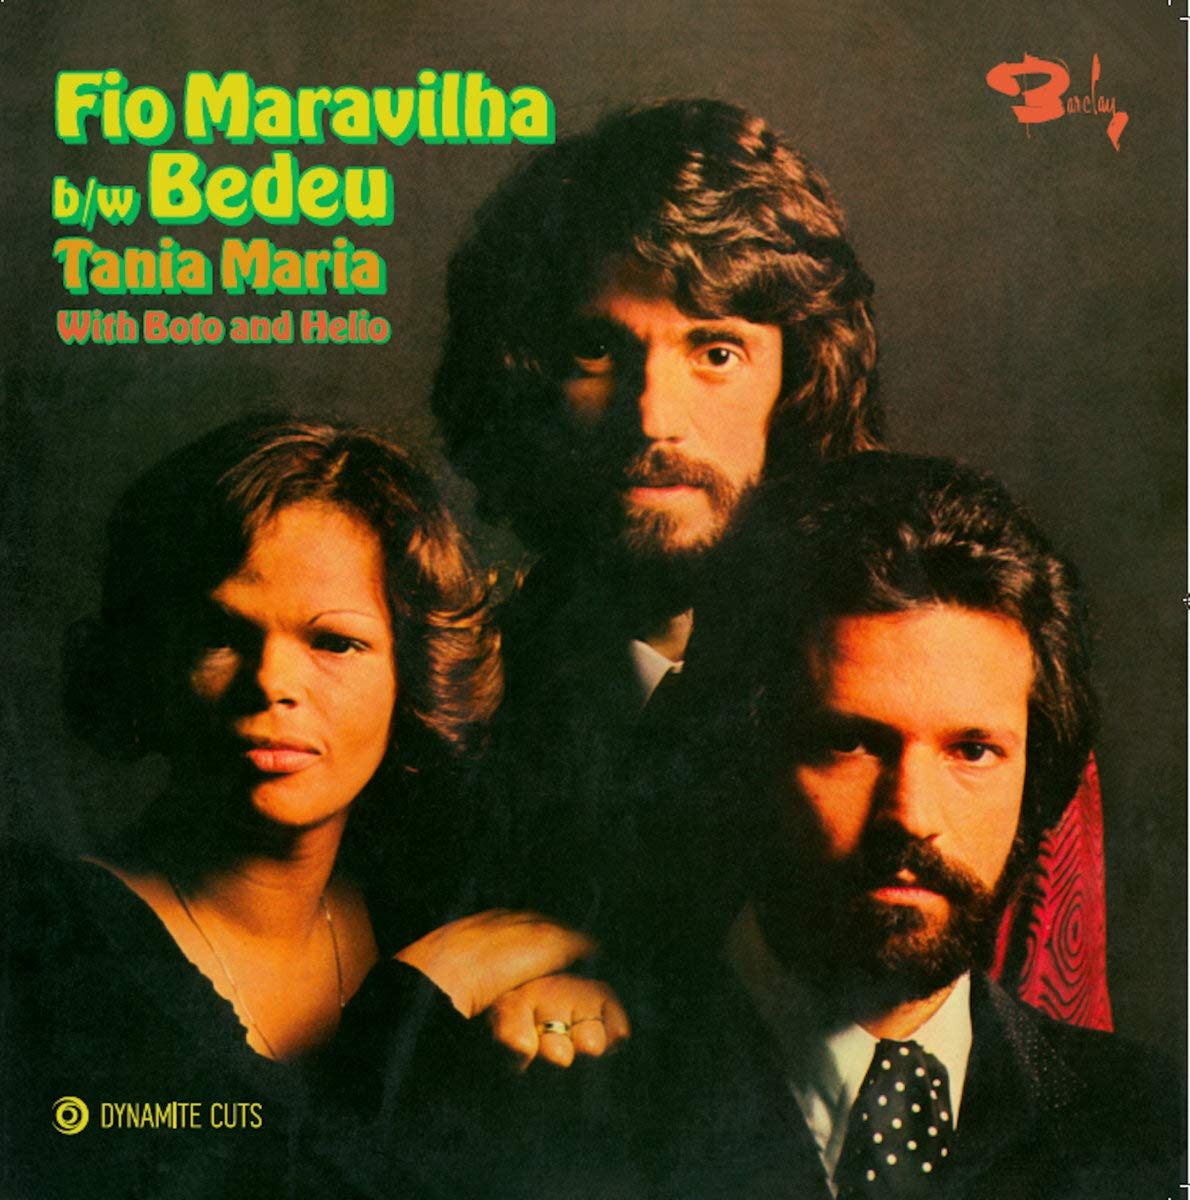 Tania Maria with Boto And Helio - Fio Maravilha / Bedeu [7''] (full color sleeve, limited to 500, import)